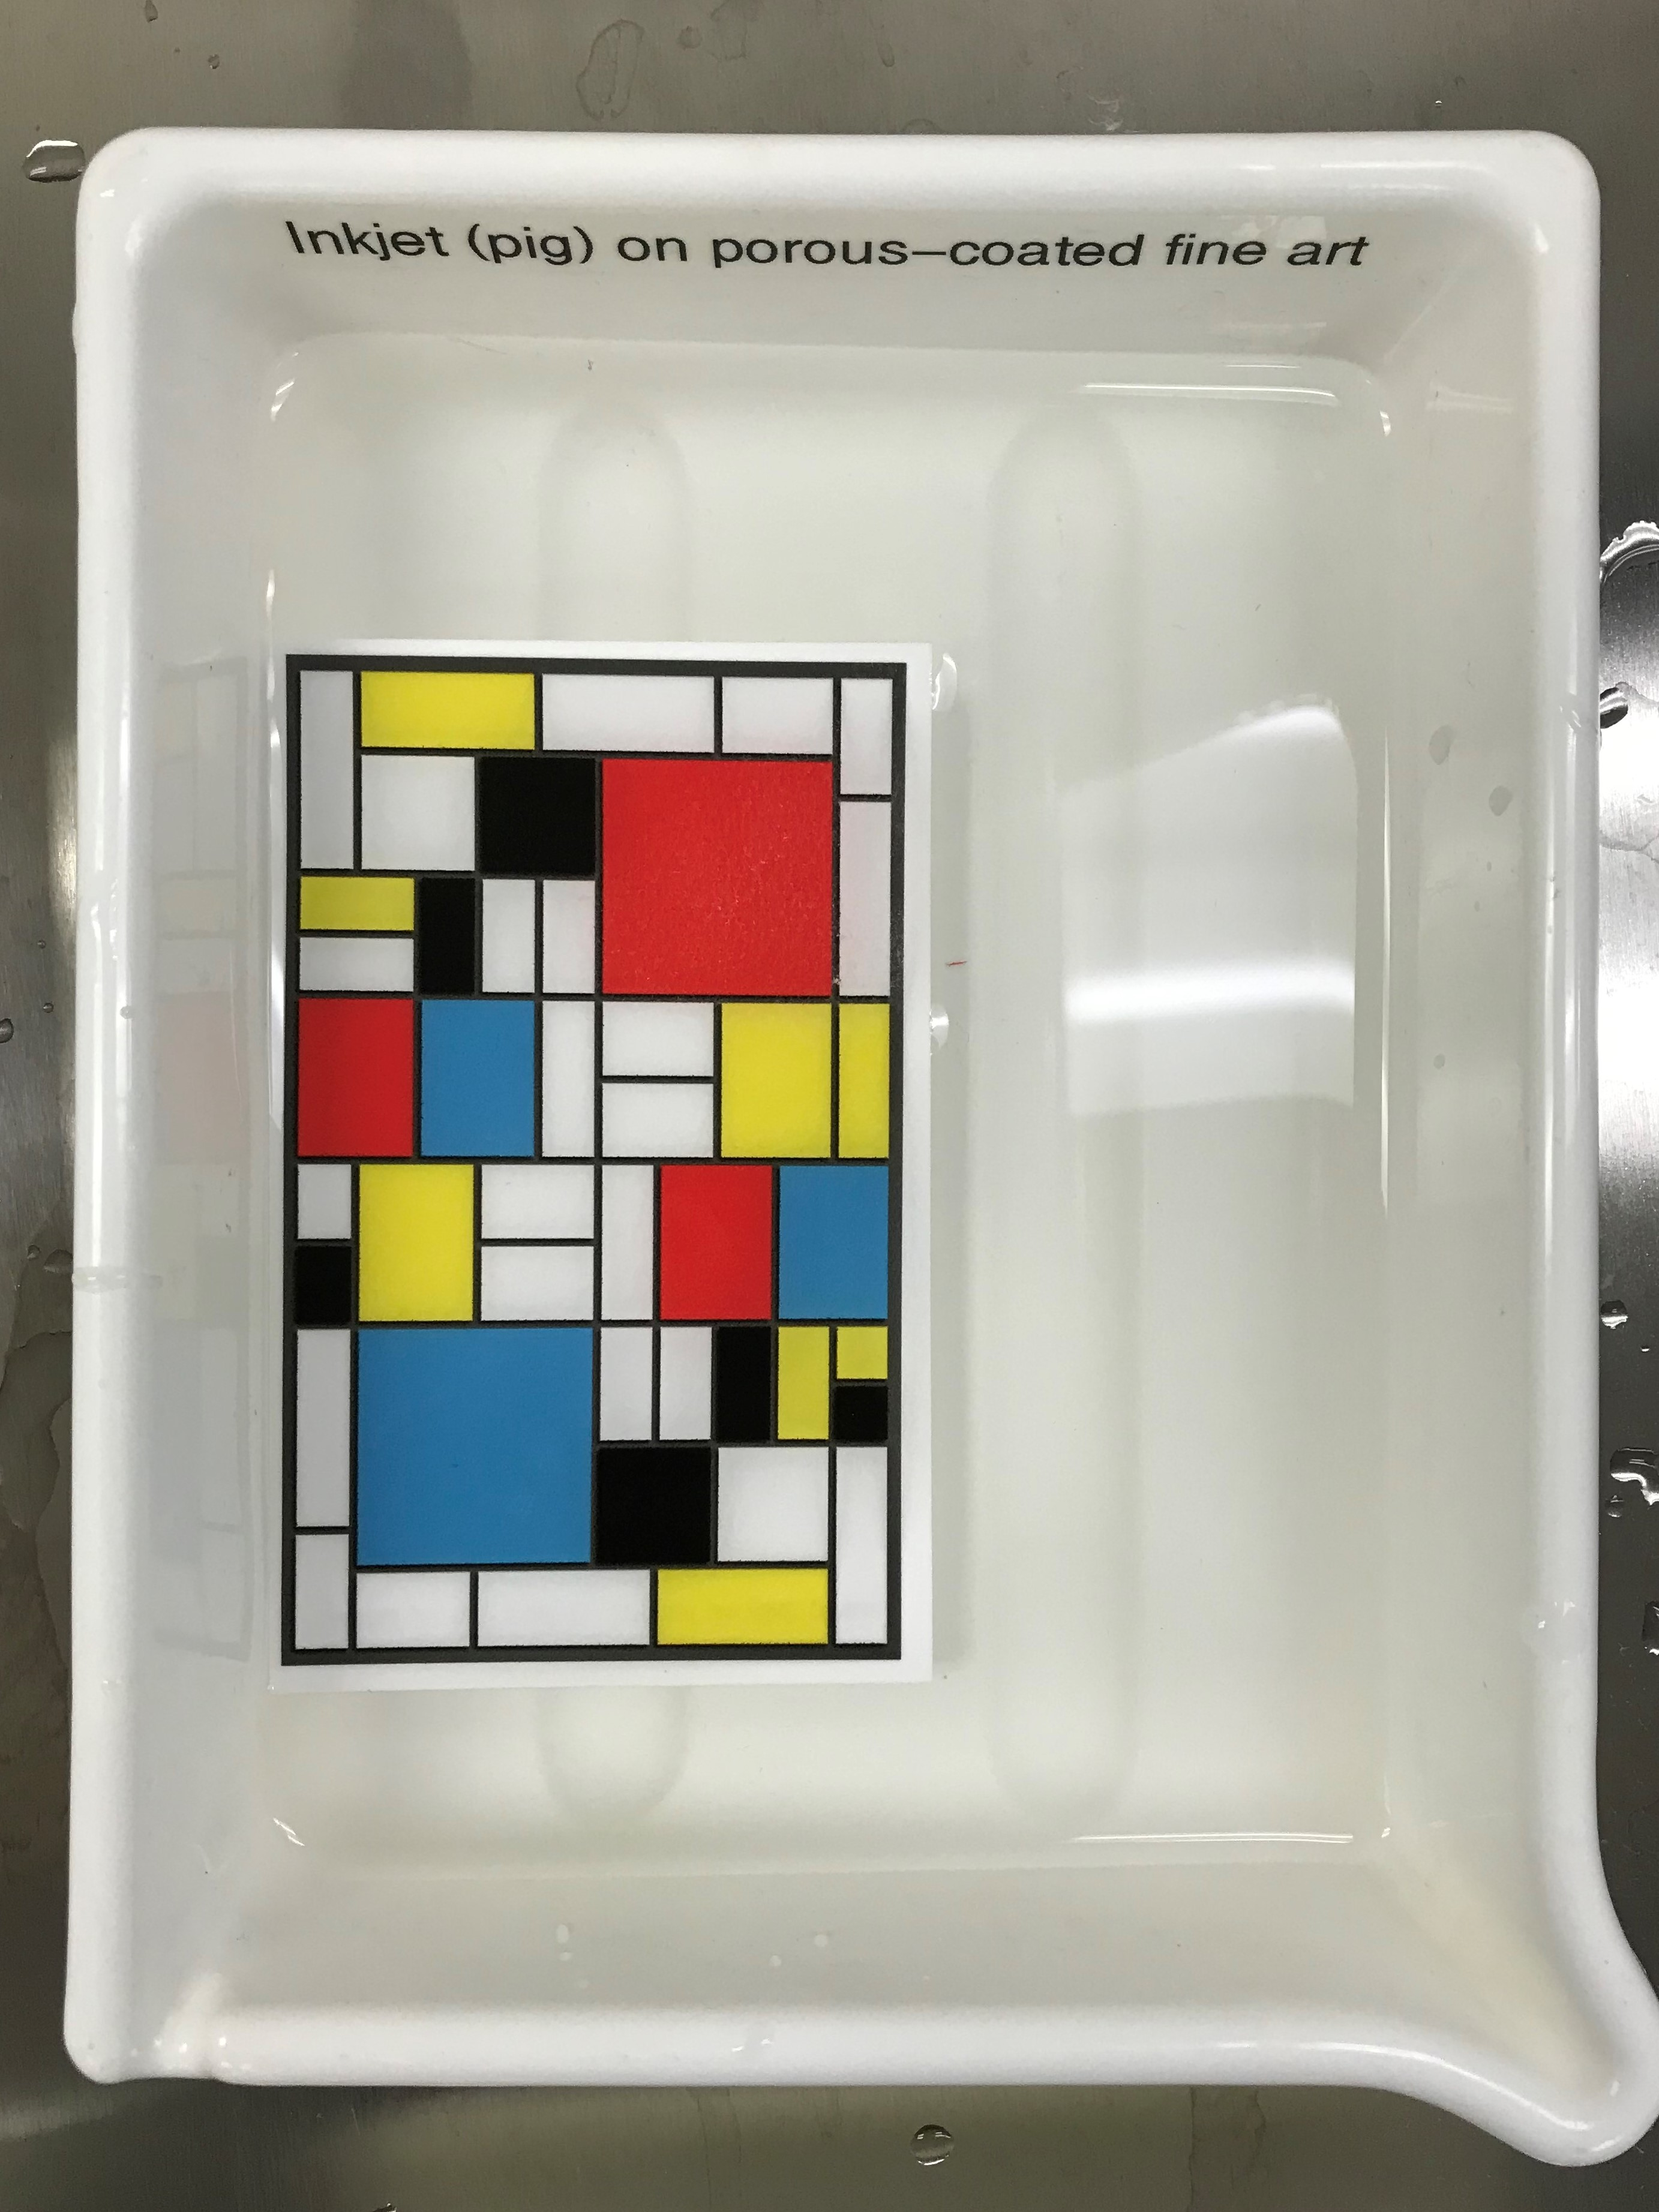 The print is underwater. The colors include: yellow, white, black, red, and blue. It is labeled: Ink